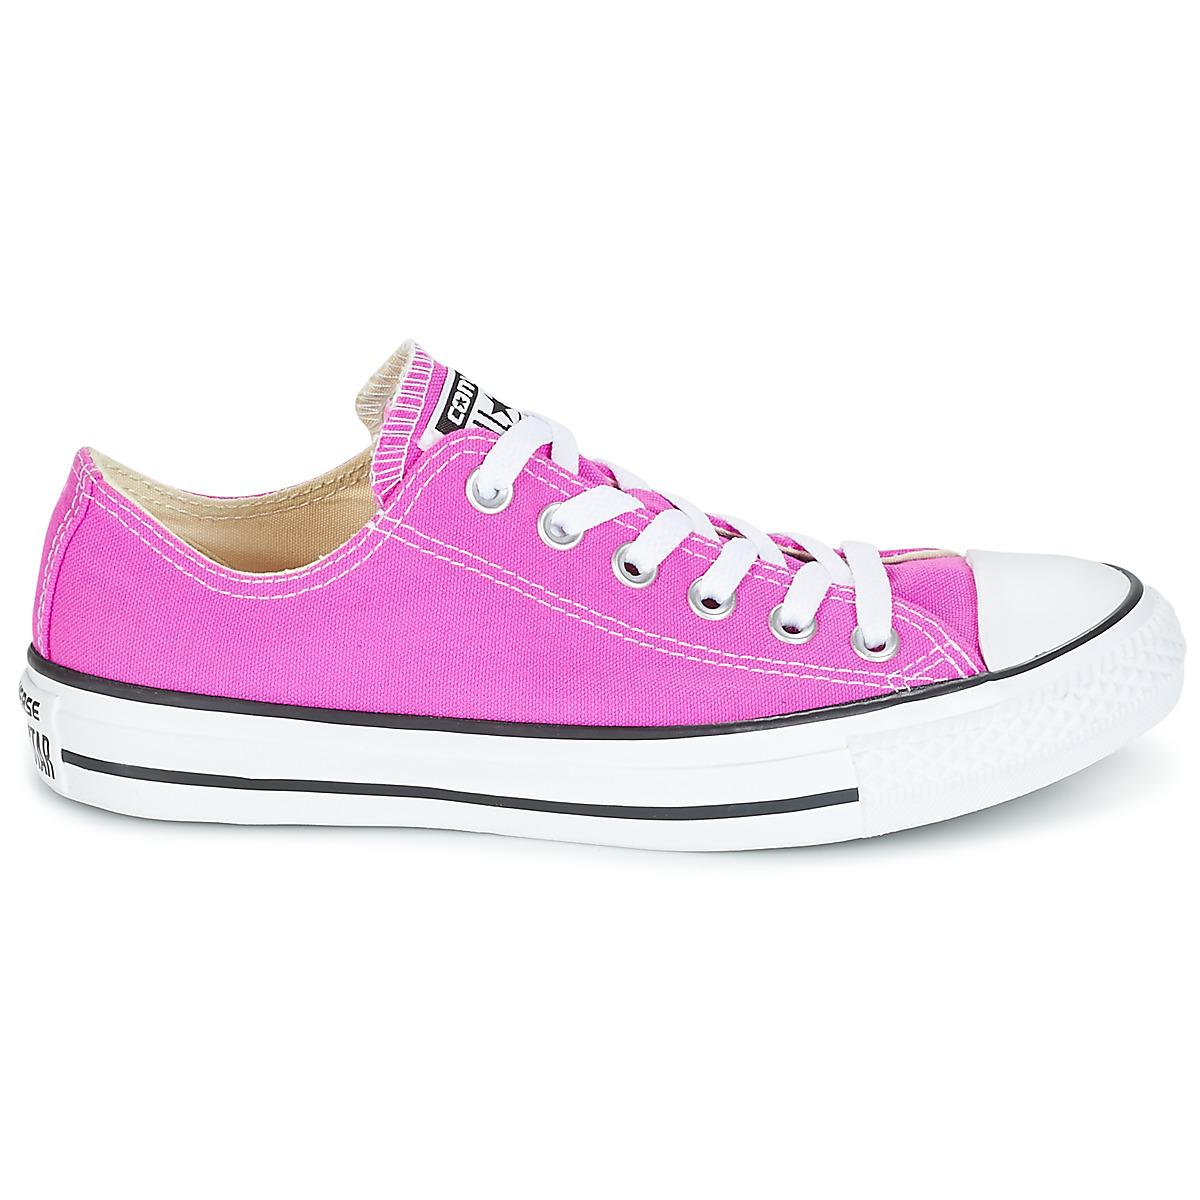 100ba0be63065a Converse - Chuck Taylor All Star Ox Seasonal Colors Women s Shoes  (trainers) In Pink. View fullscreen